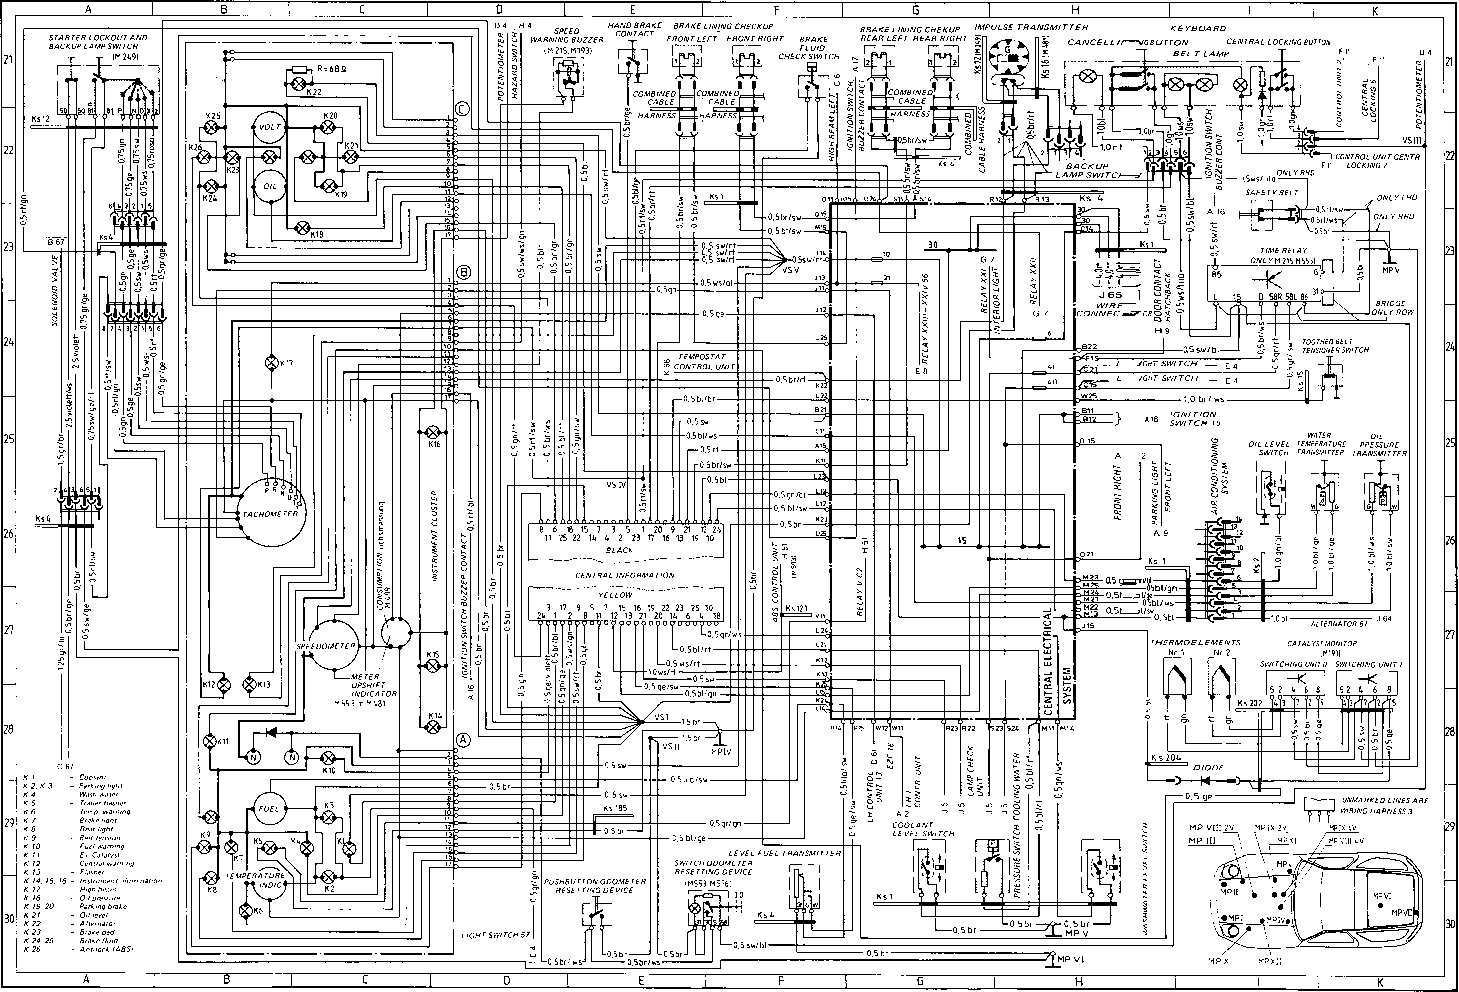 Wiring Diagram Type 928 S Model 86 page - Porsche 928 Repair